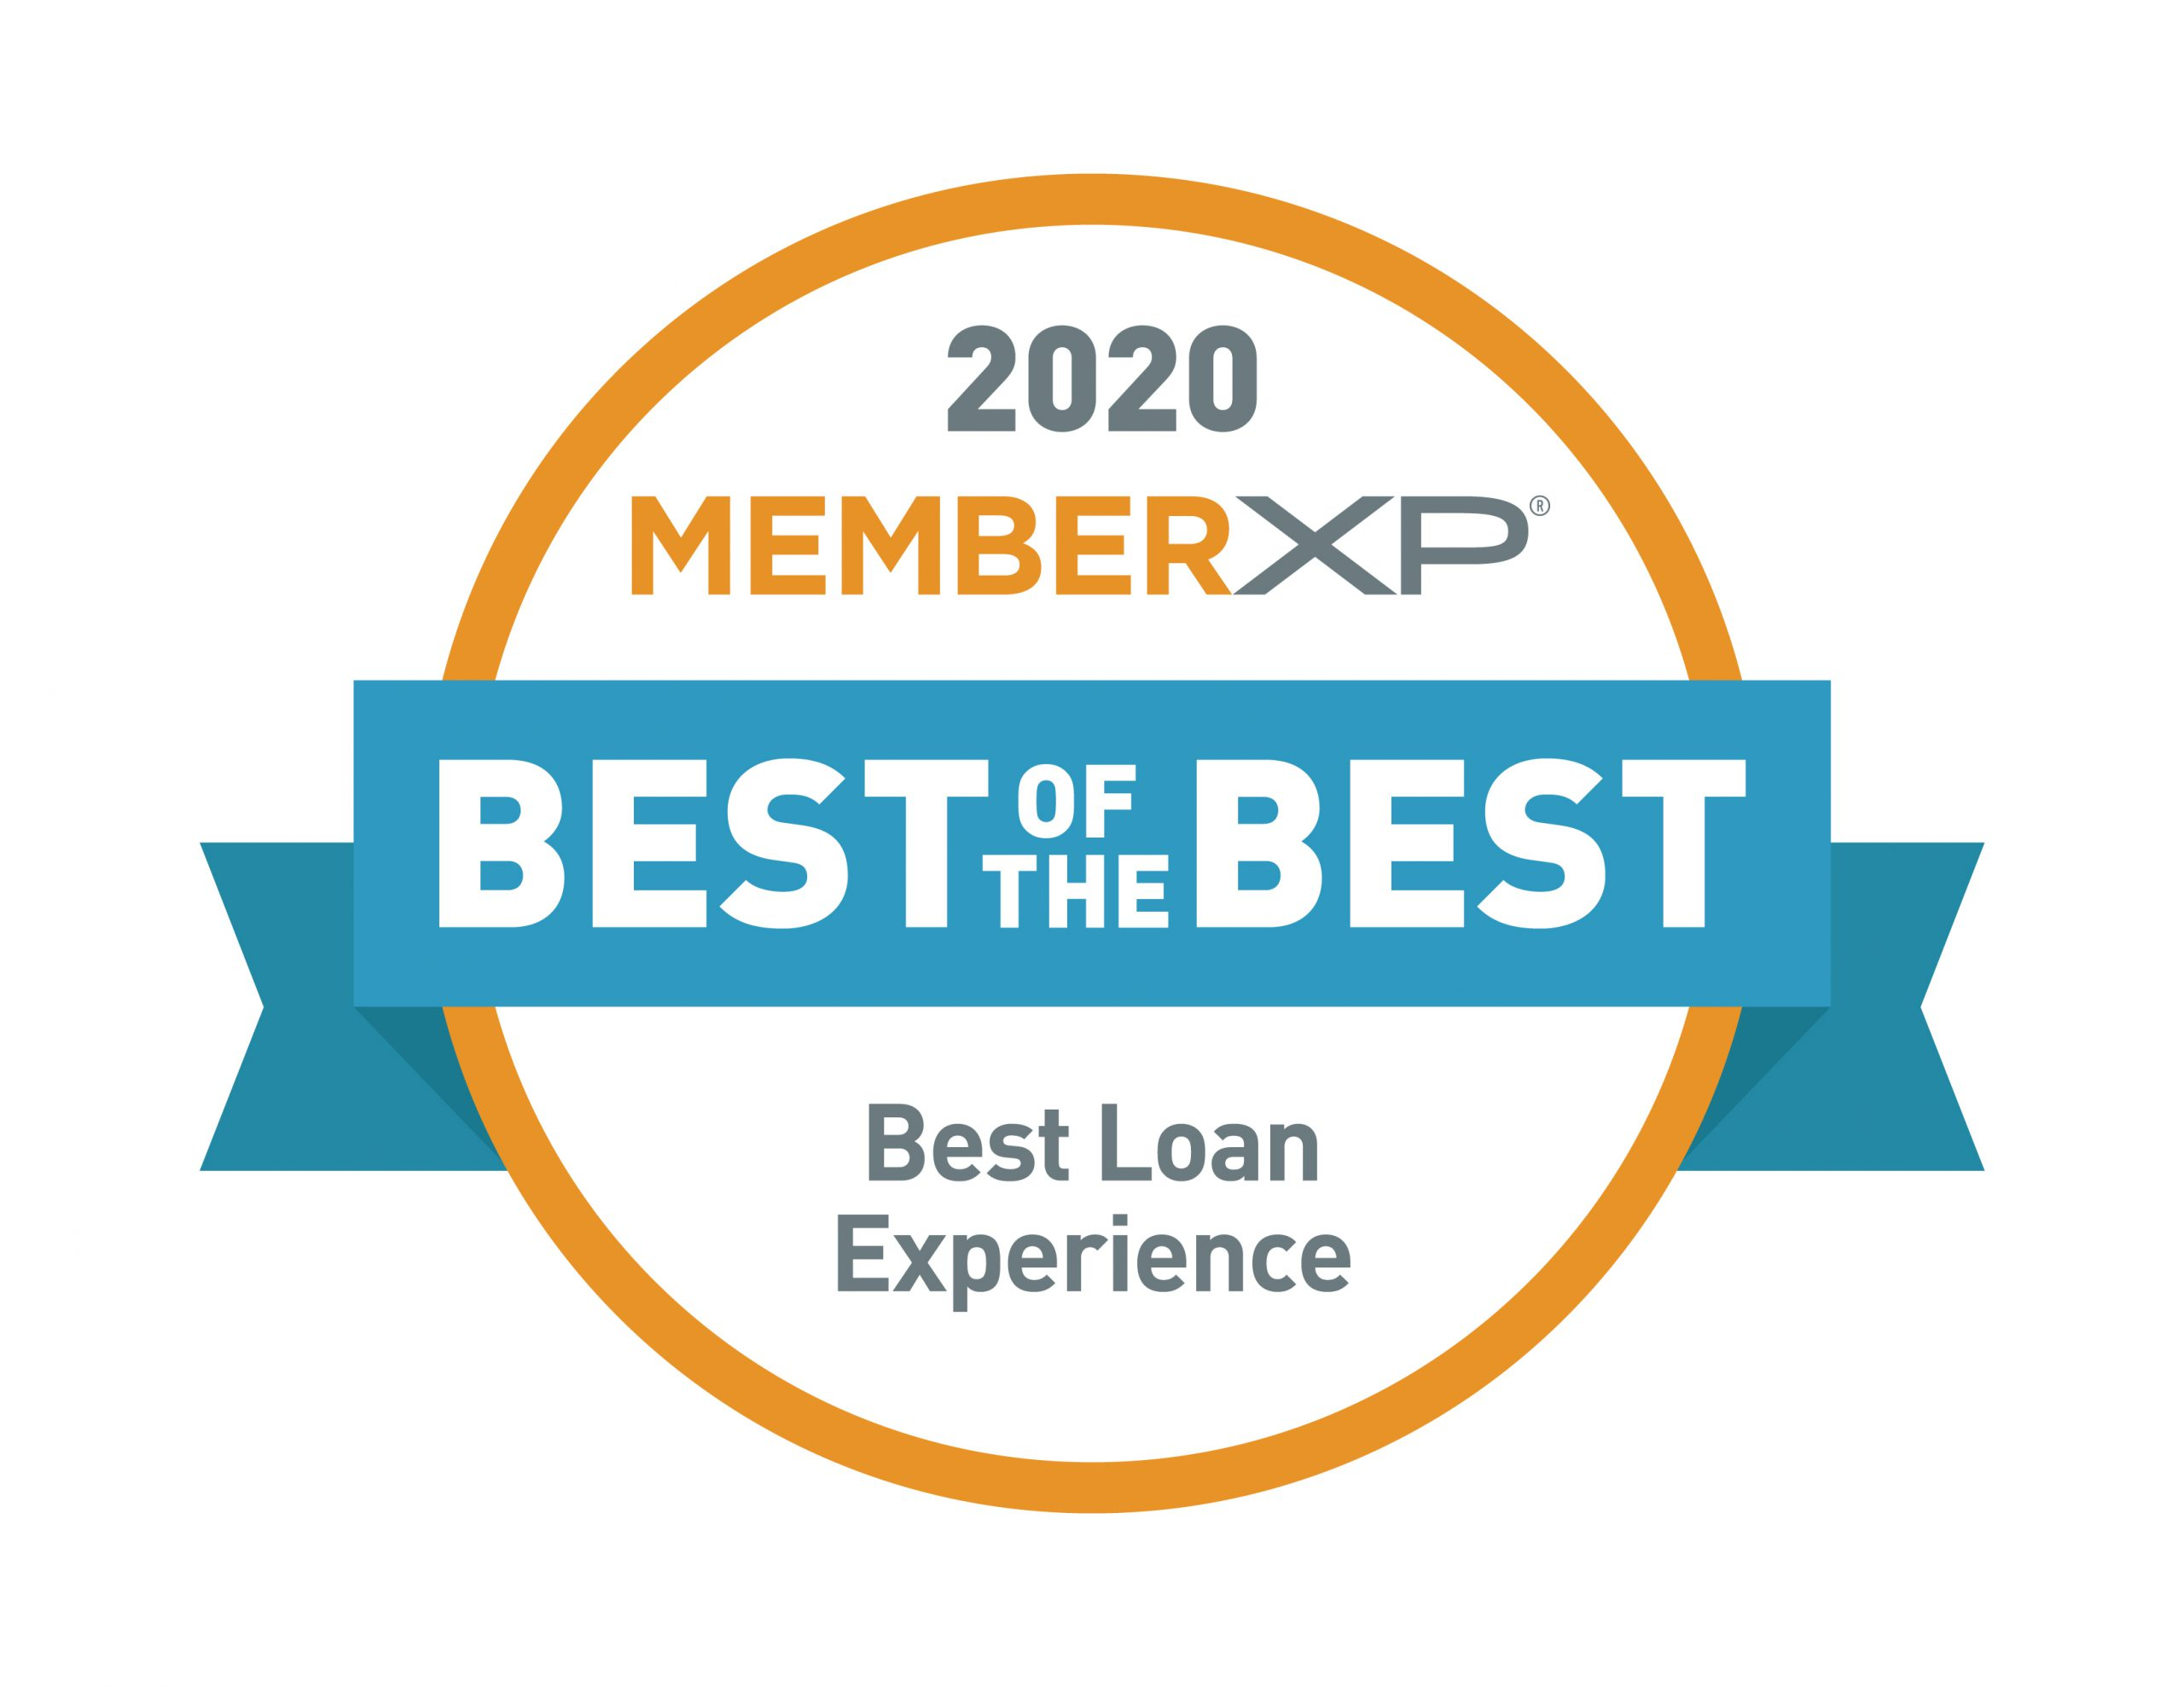 143531-Best-Loan-Experience-Seal-RGB